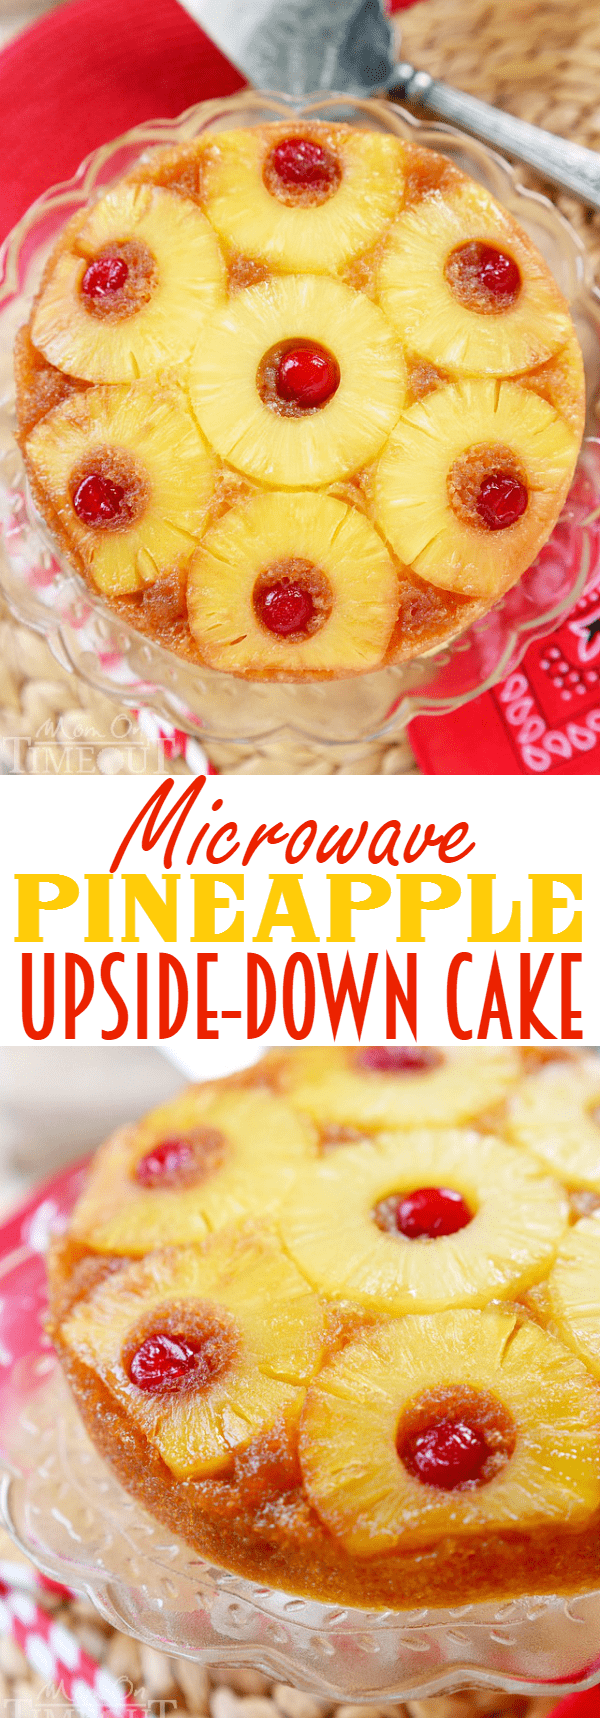 Stay cool this summer with this Microwave Pineapple Upside Down Cake! In just 10 minutes, you and your family can be enjoying this gorgeous cake - straight from your microwave! The PERFECT easy dessert recipe! | MomOnTimeout.com